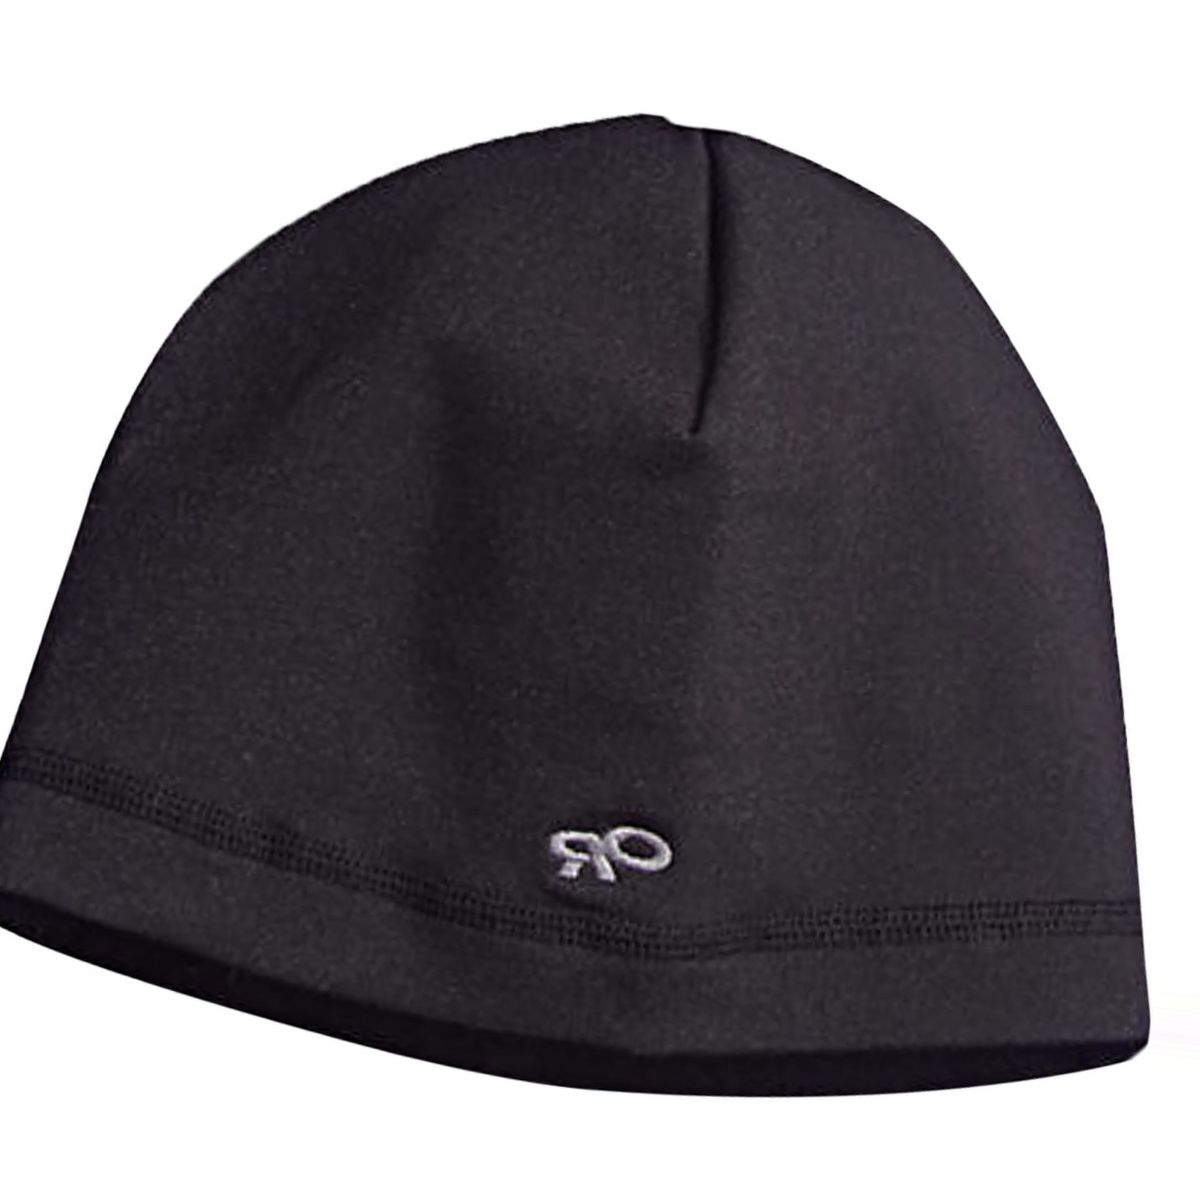 Outdoor Research Novo Watch Cap - Men's